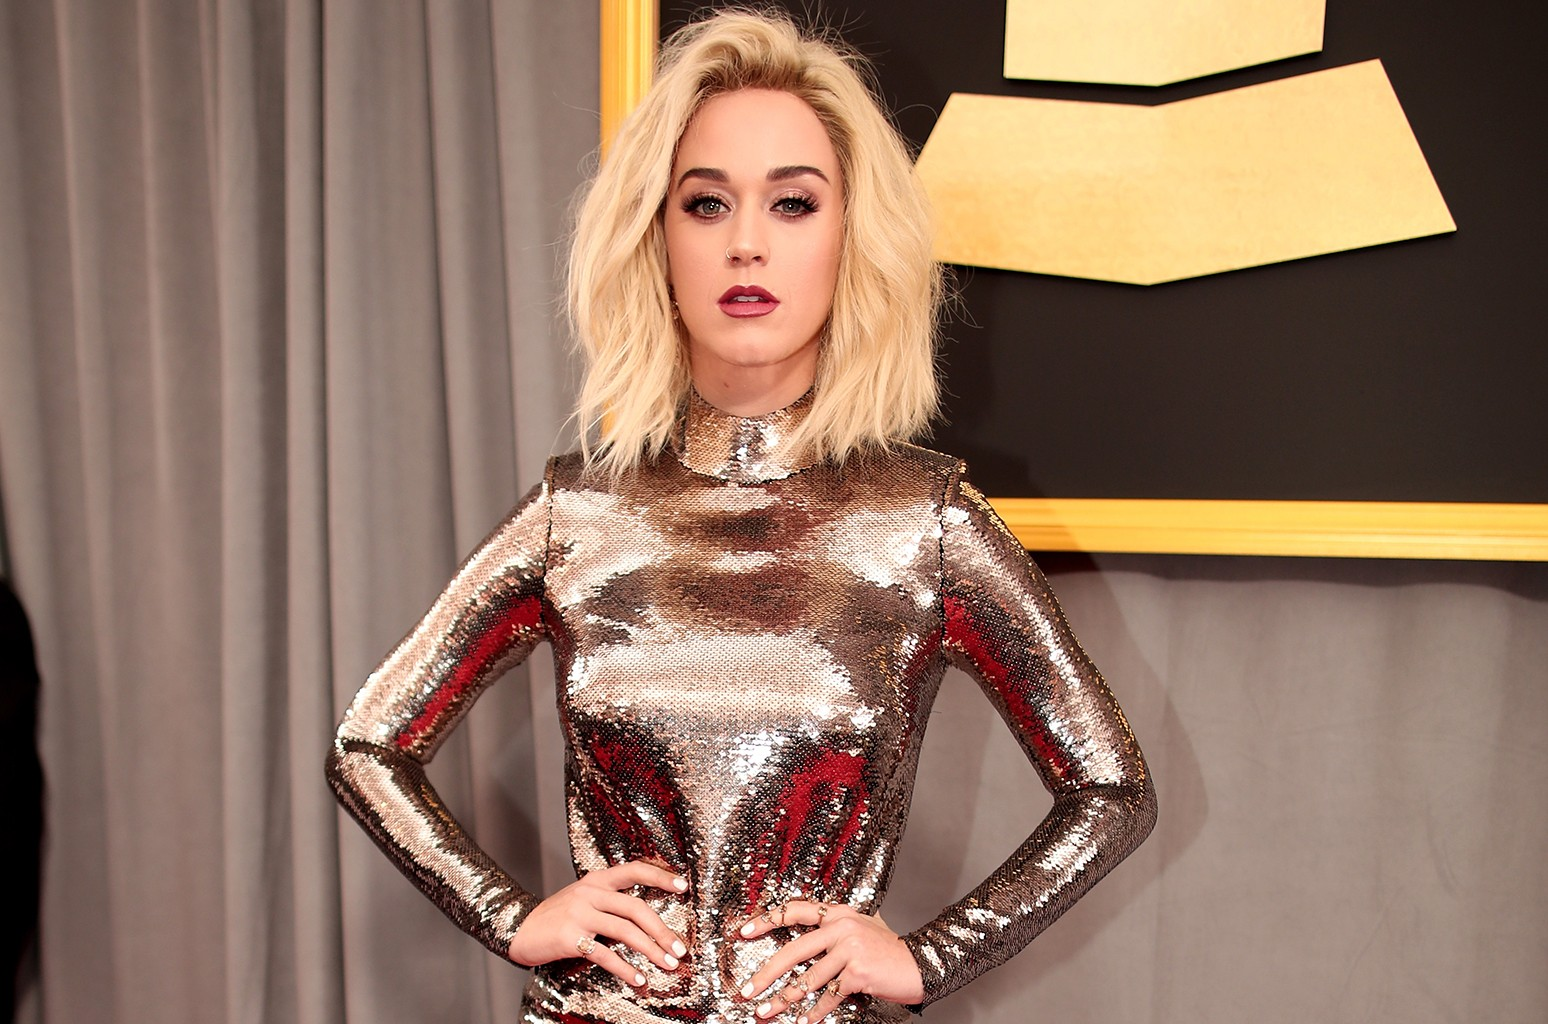 Katy Perry attends The 59th Grammy Awards at Staples Center on Feb. 12, 2017 in Los Angeles.